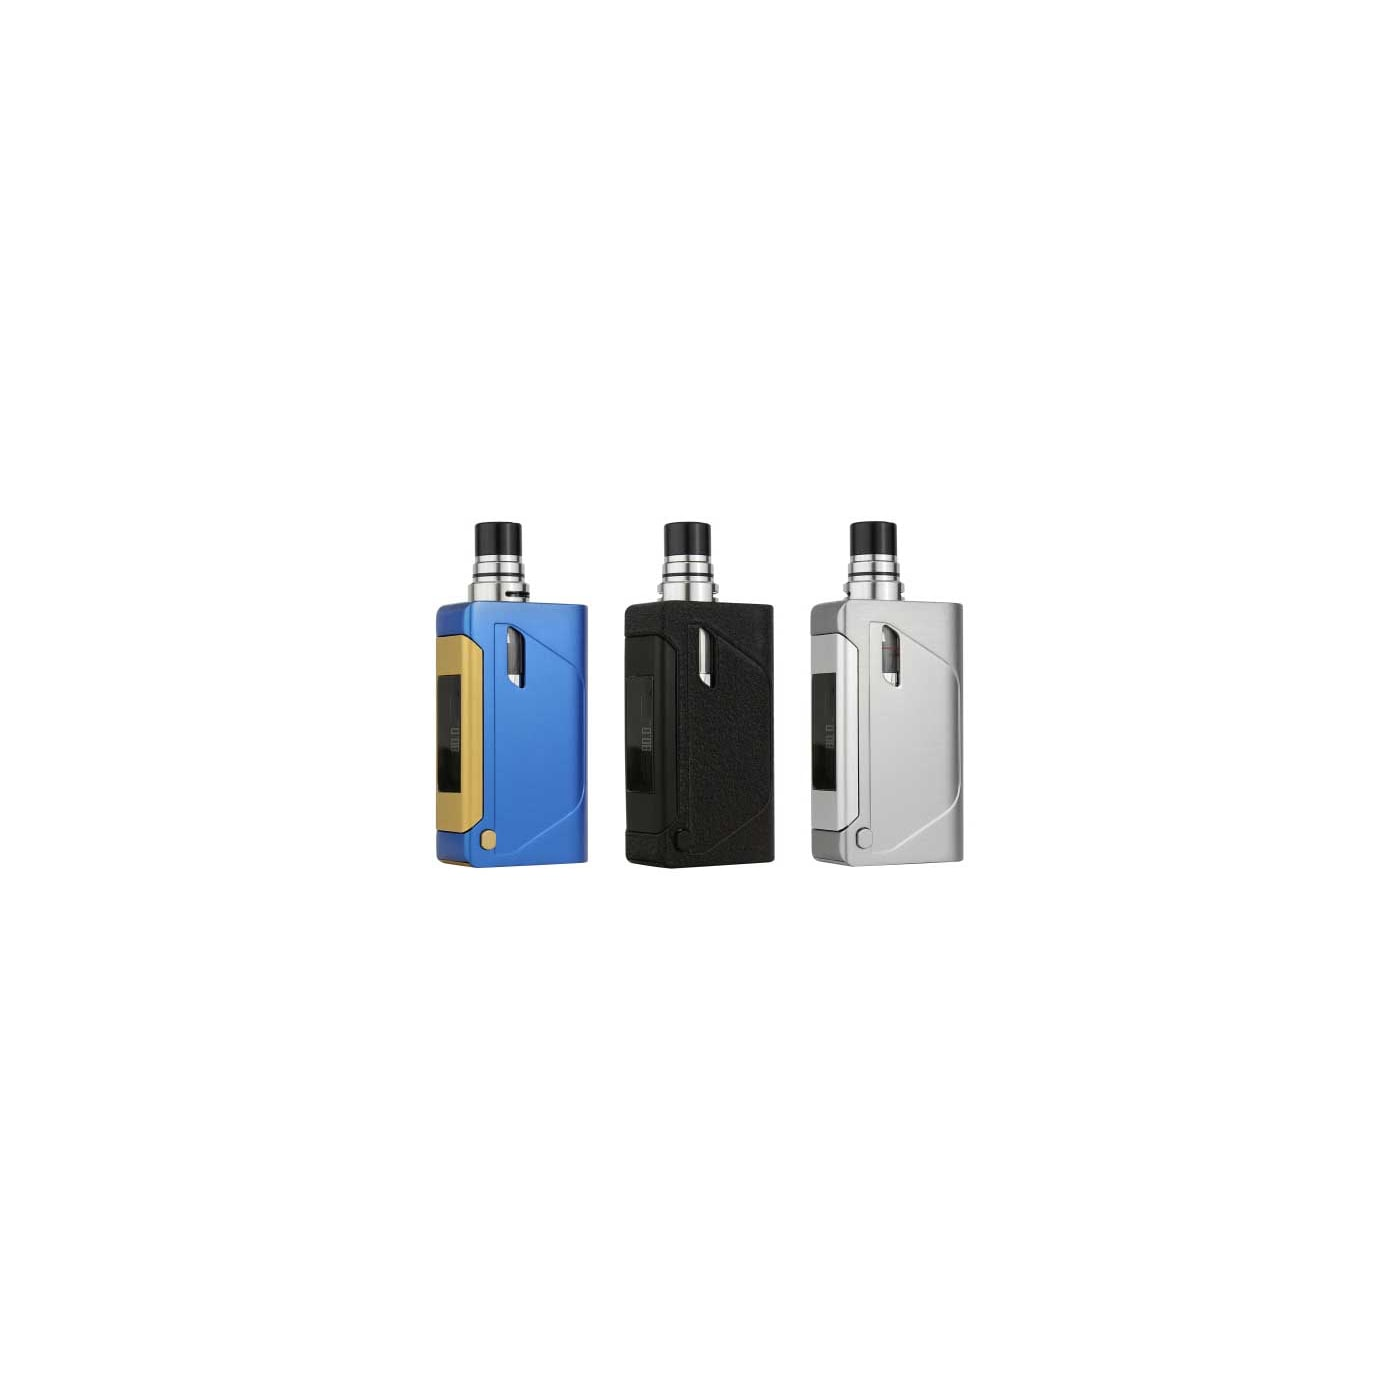 LIMITLESS MARQUEE 3-IN-1 MOD SYSTEM WITH POD ADAPTER Colors